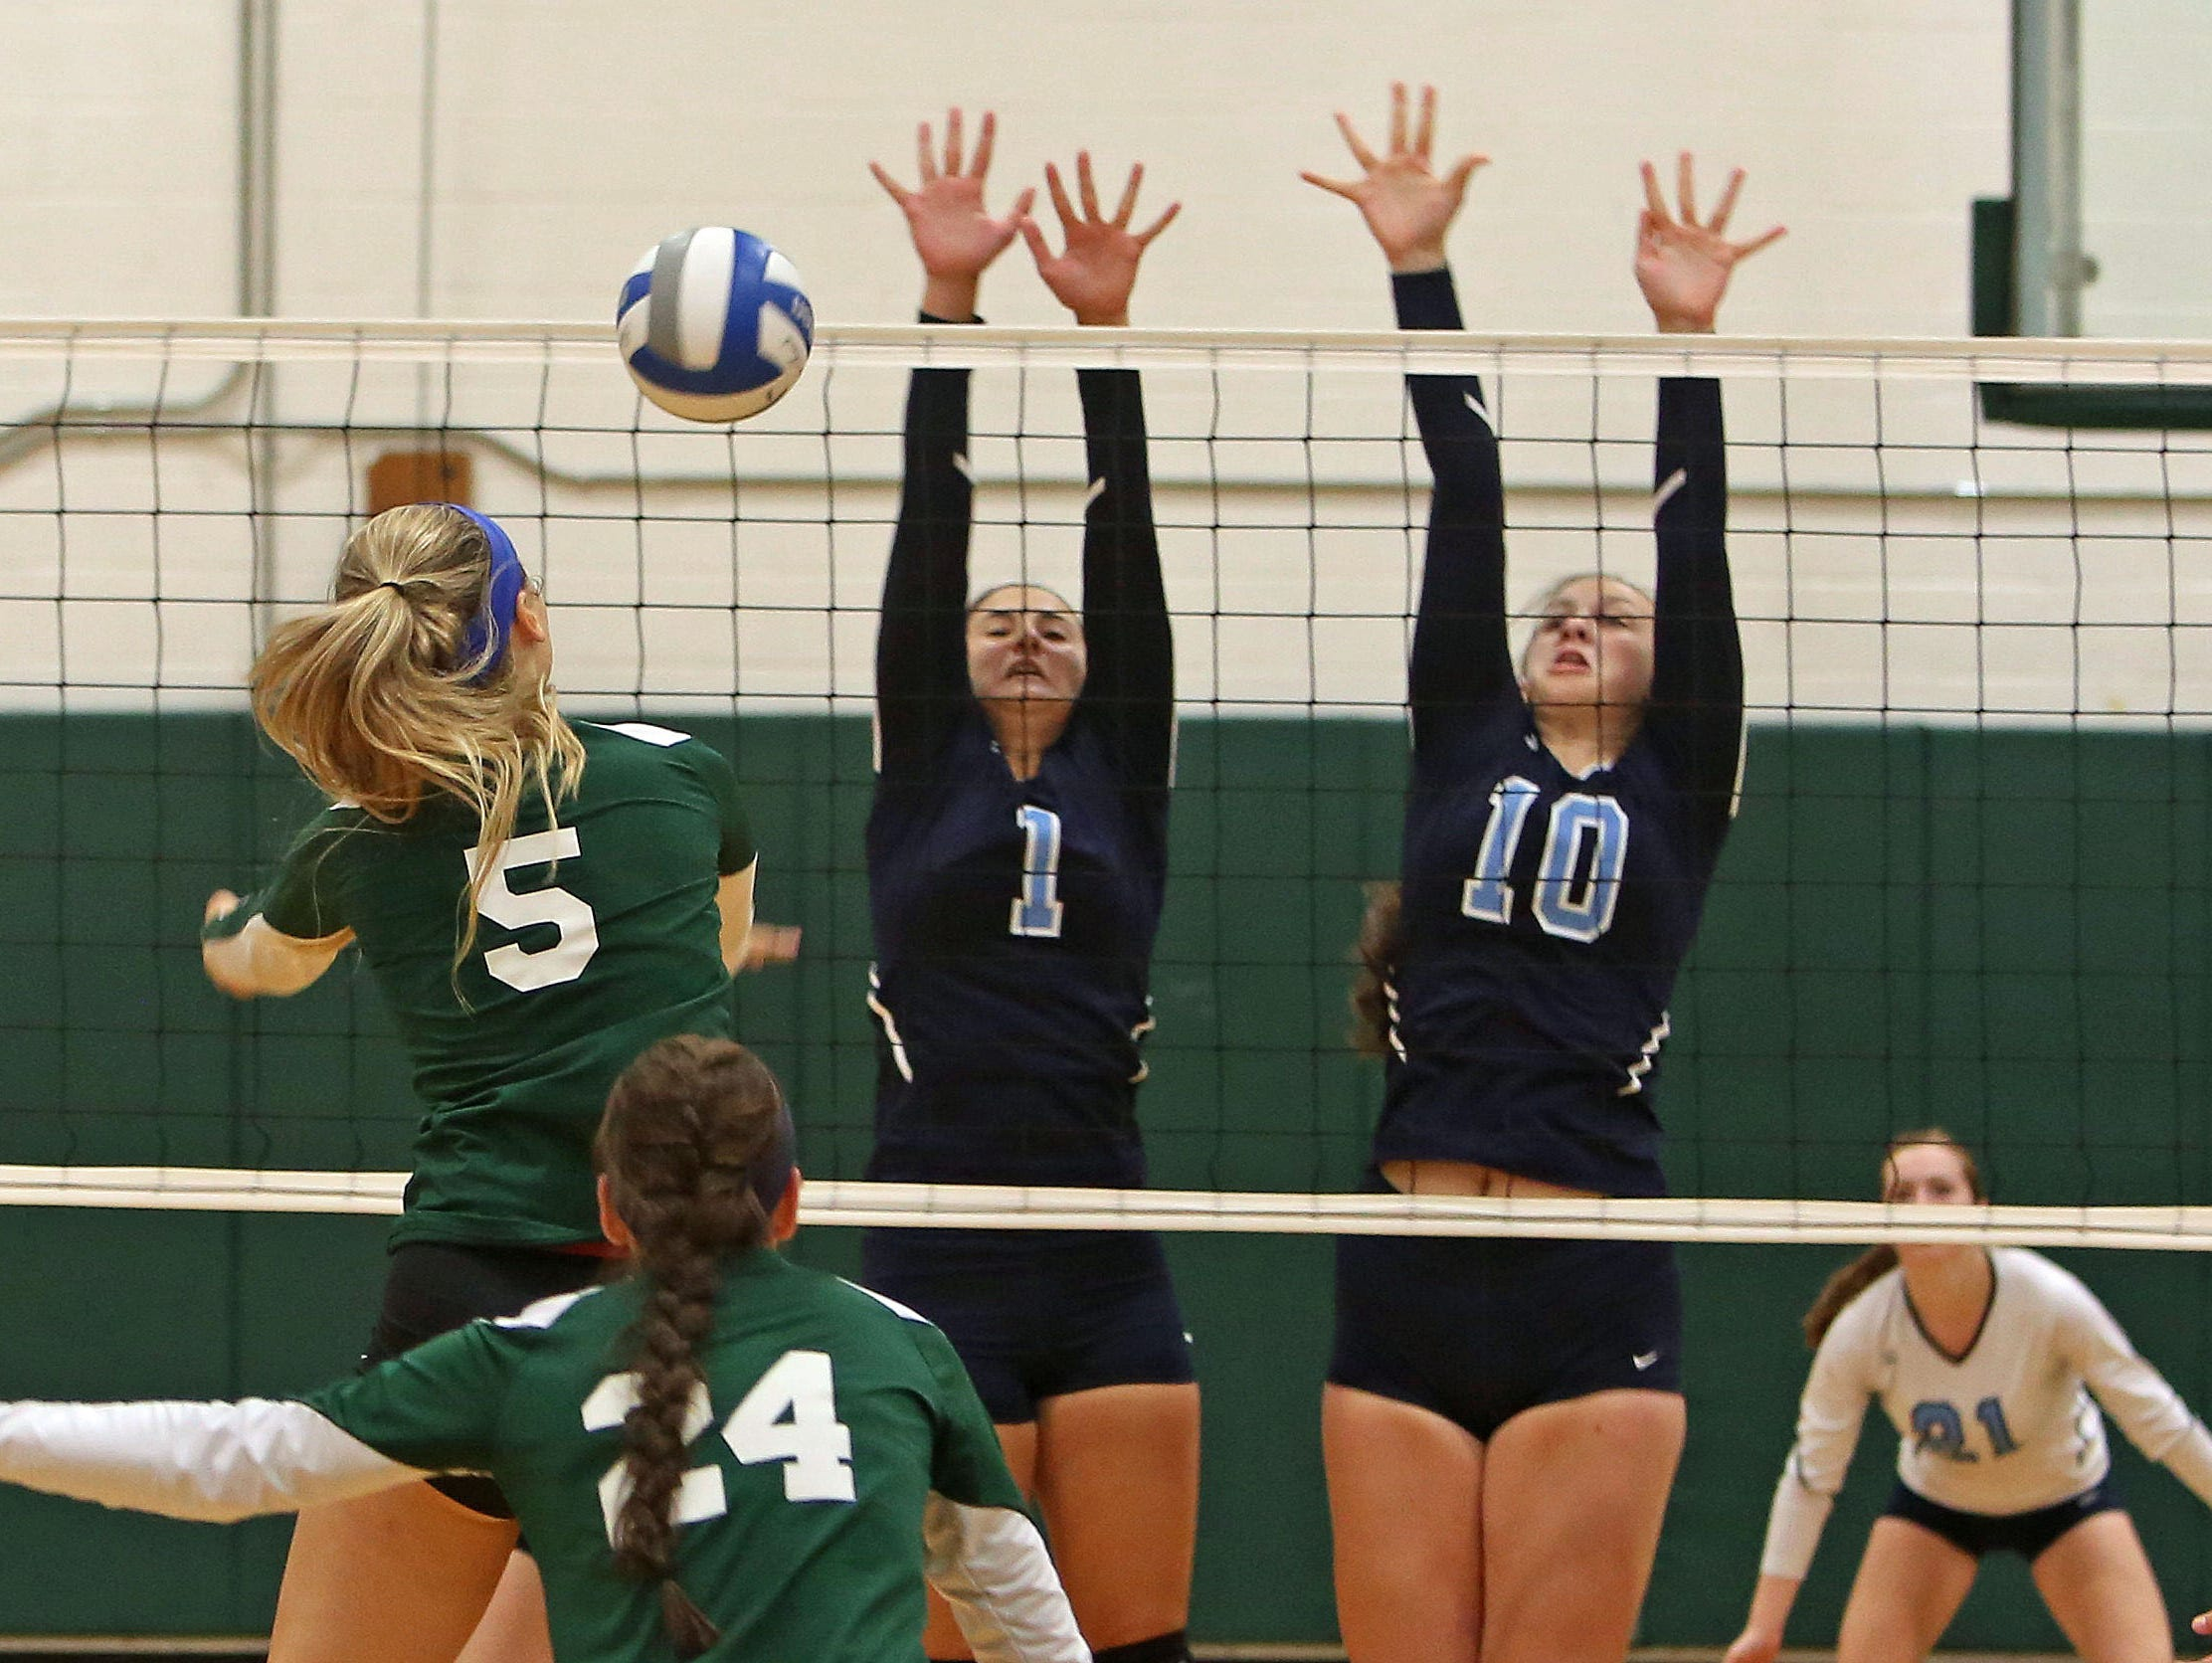 Westlake's Angelina Guarnieri (1) and Cayleigh Power (10) combine to stop a shot by Pleasantville's Chloe Violette (5) during volleyball action at Pleasantville High School Sept. 30, 2015.